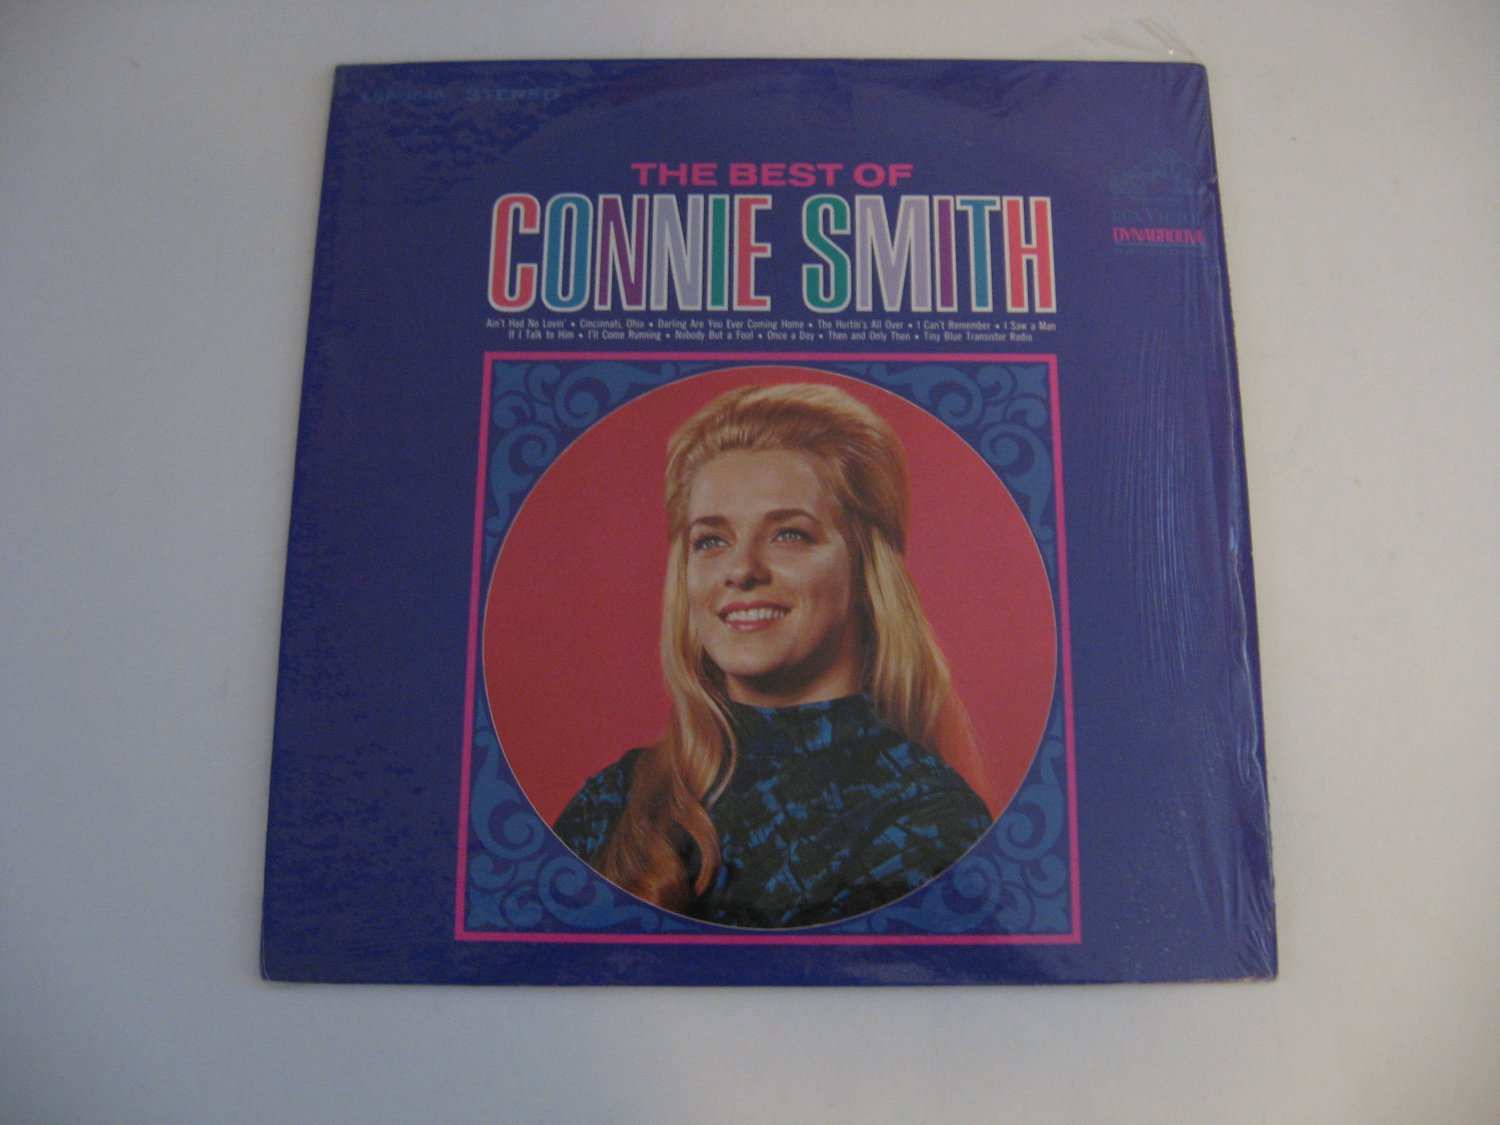 Connie Smith - The Best Of Connie Smith - Circa 1967